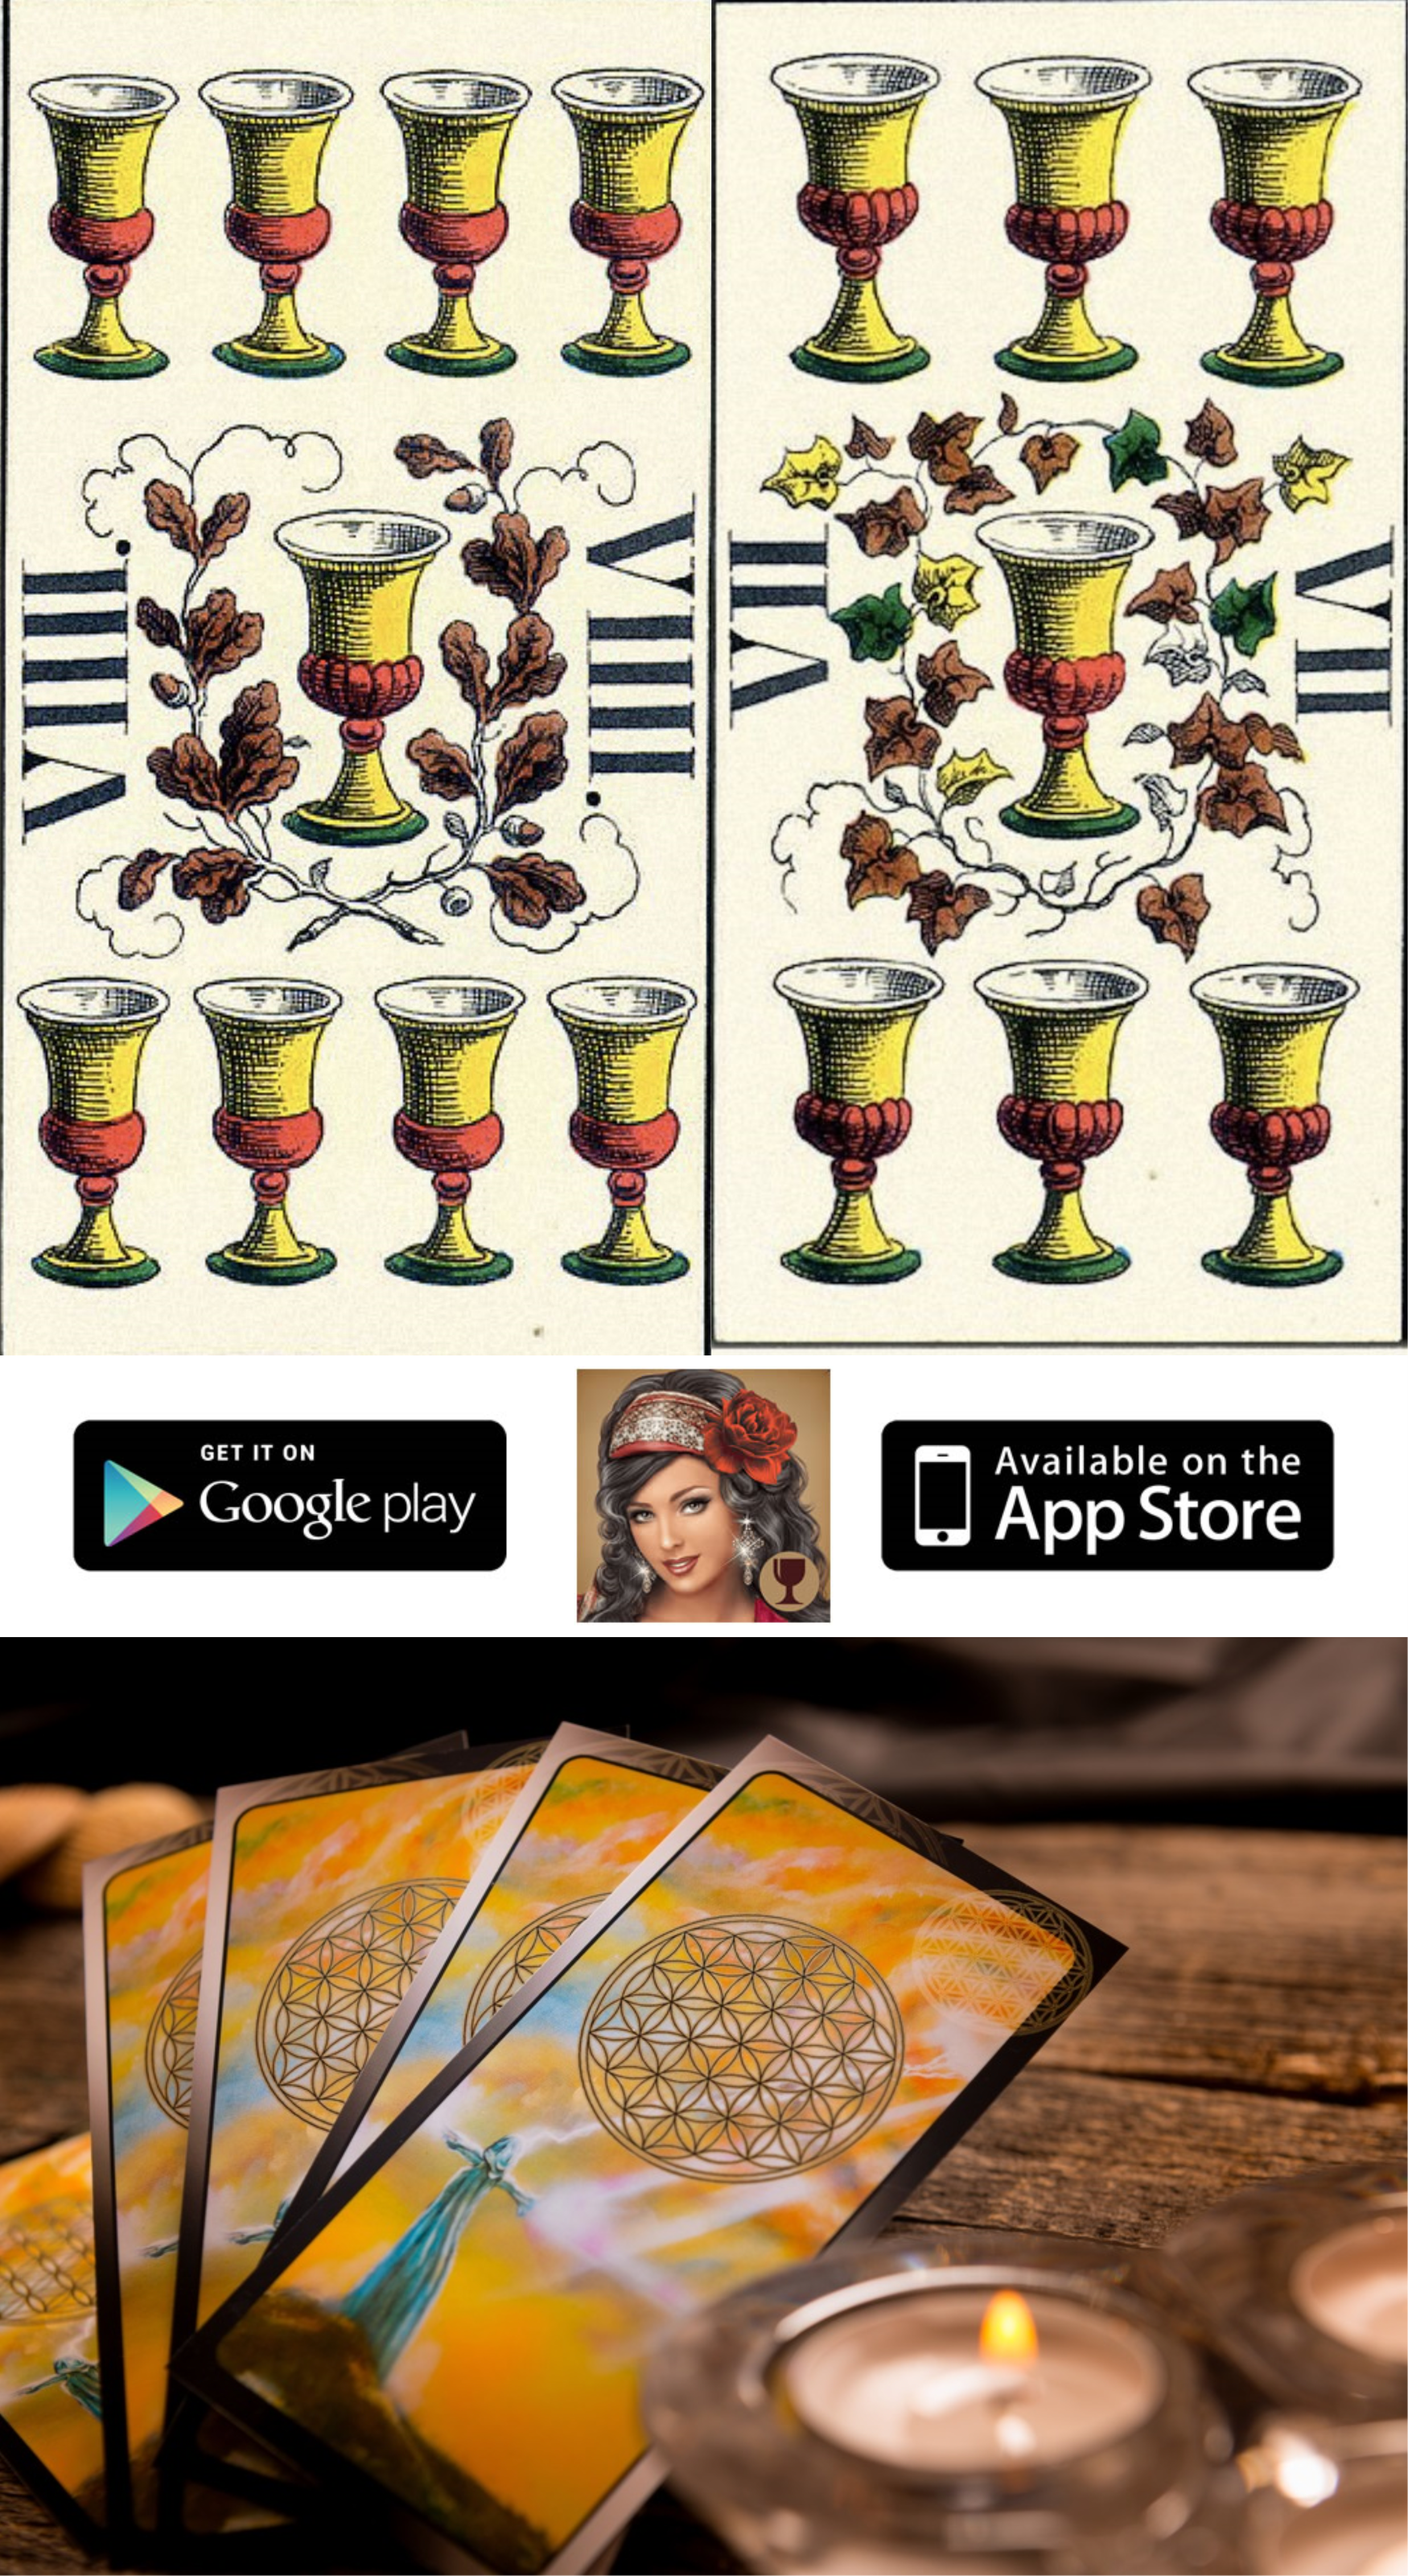 ✯ Get the free mobile application on your phone or tablet and enjoy